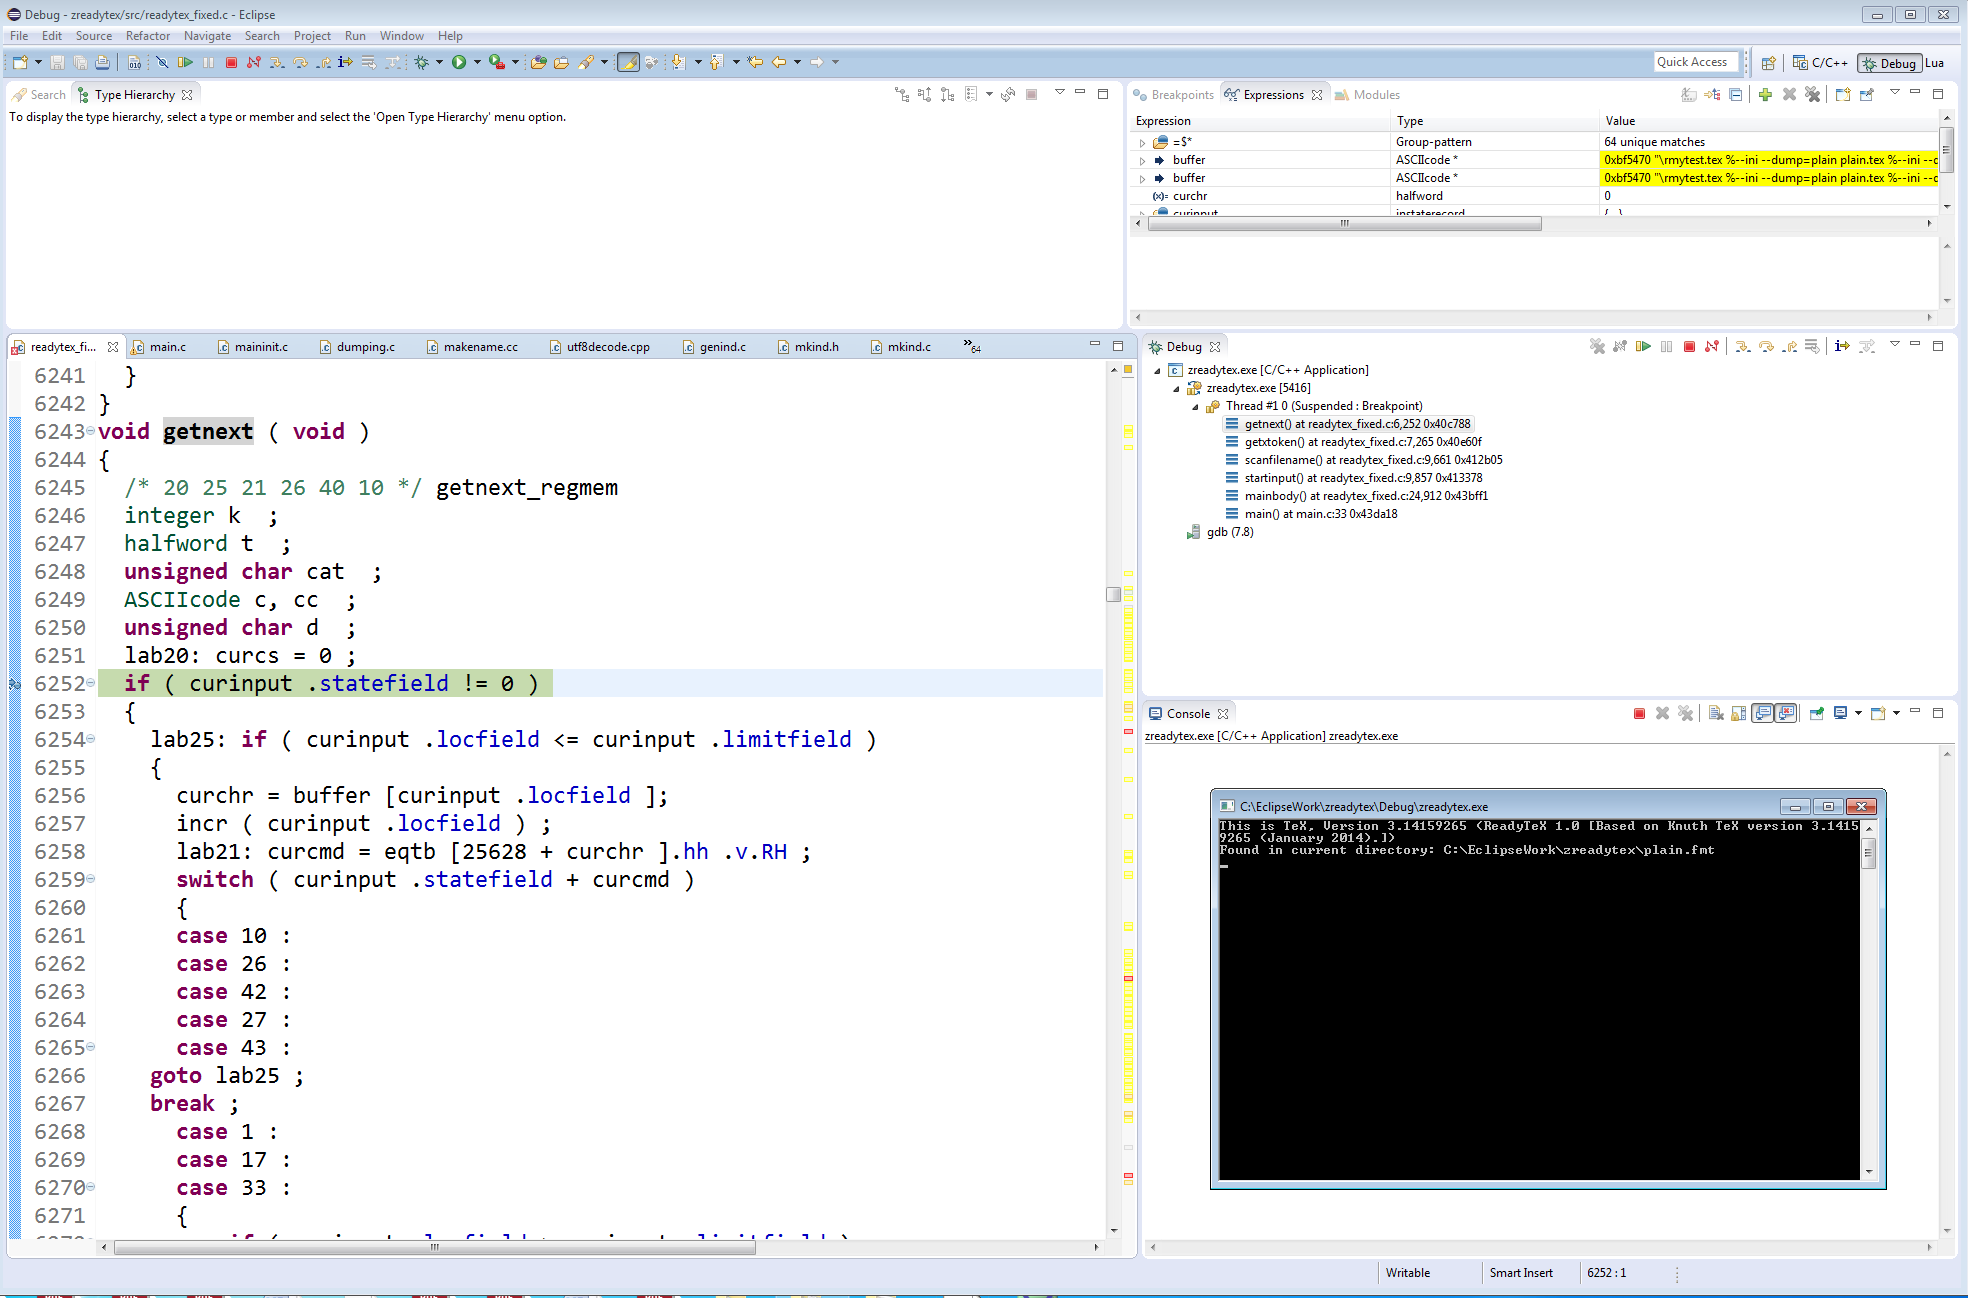 Screenshot showing TeX being executed via the Eclipse IDE